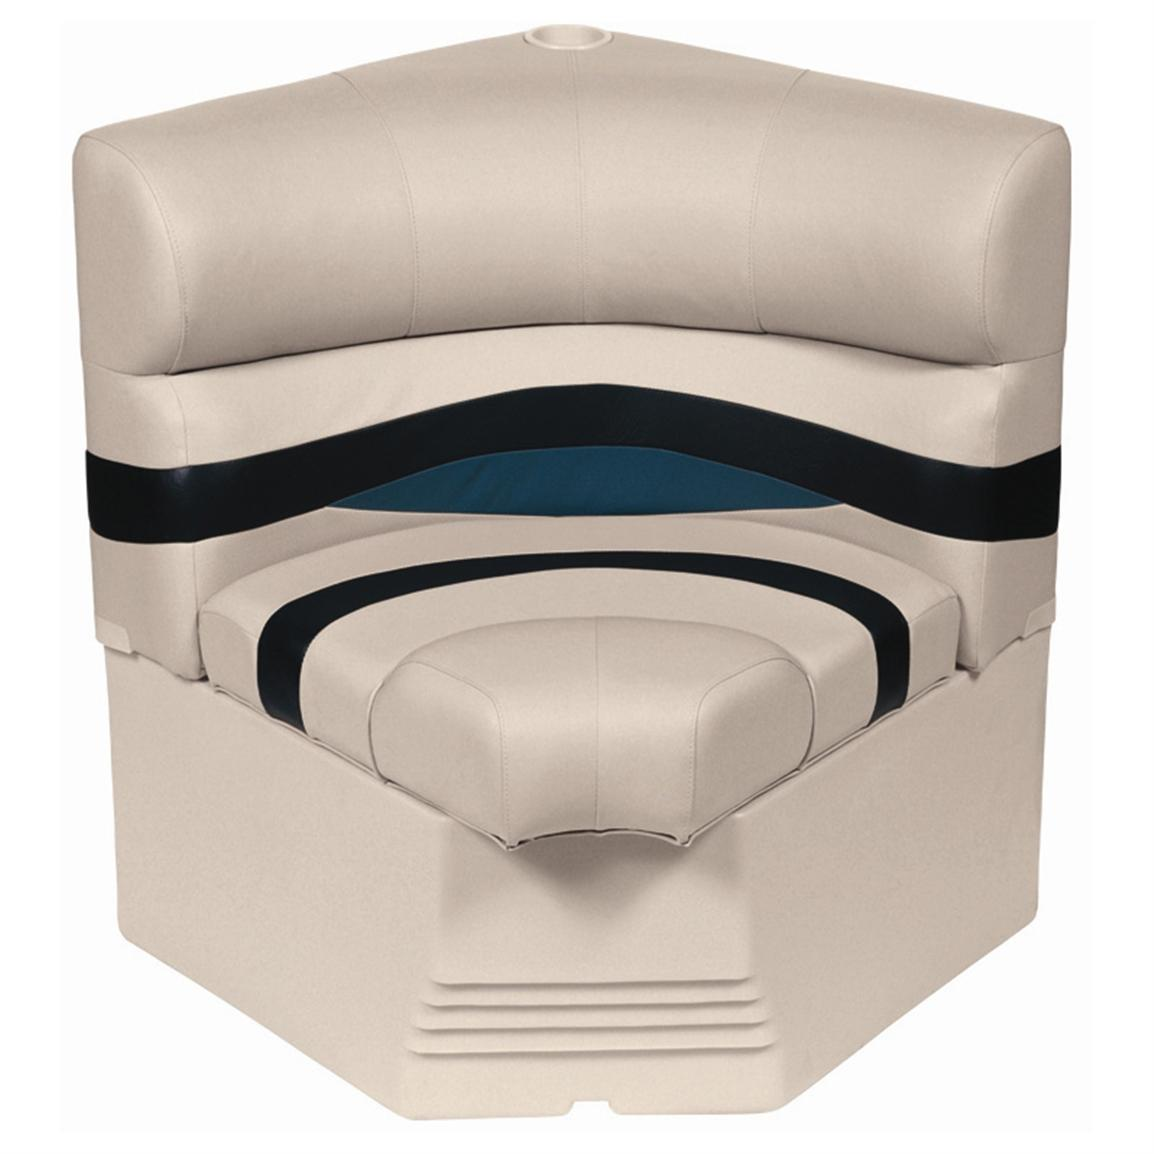 "Wise® Premier Pontoon 25"" Radius Corner Section Seat • Color A - Platinum Punch / Navy / Cobalt"